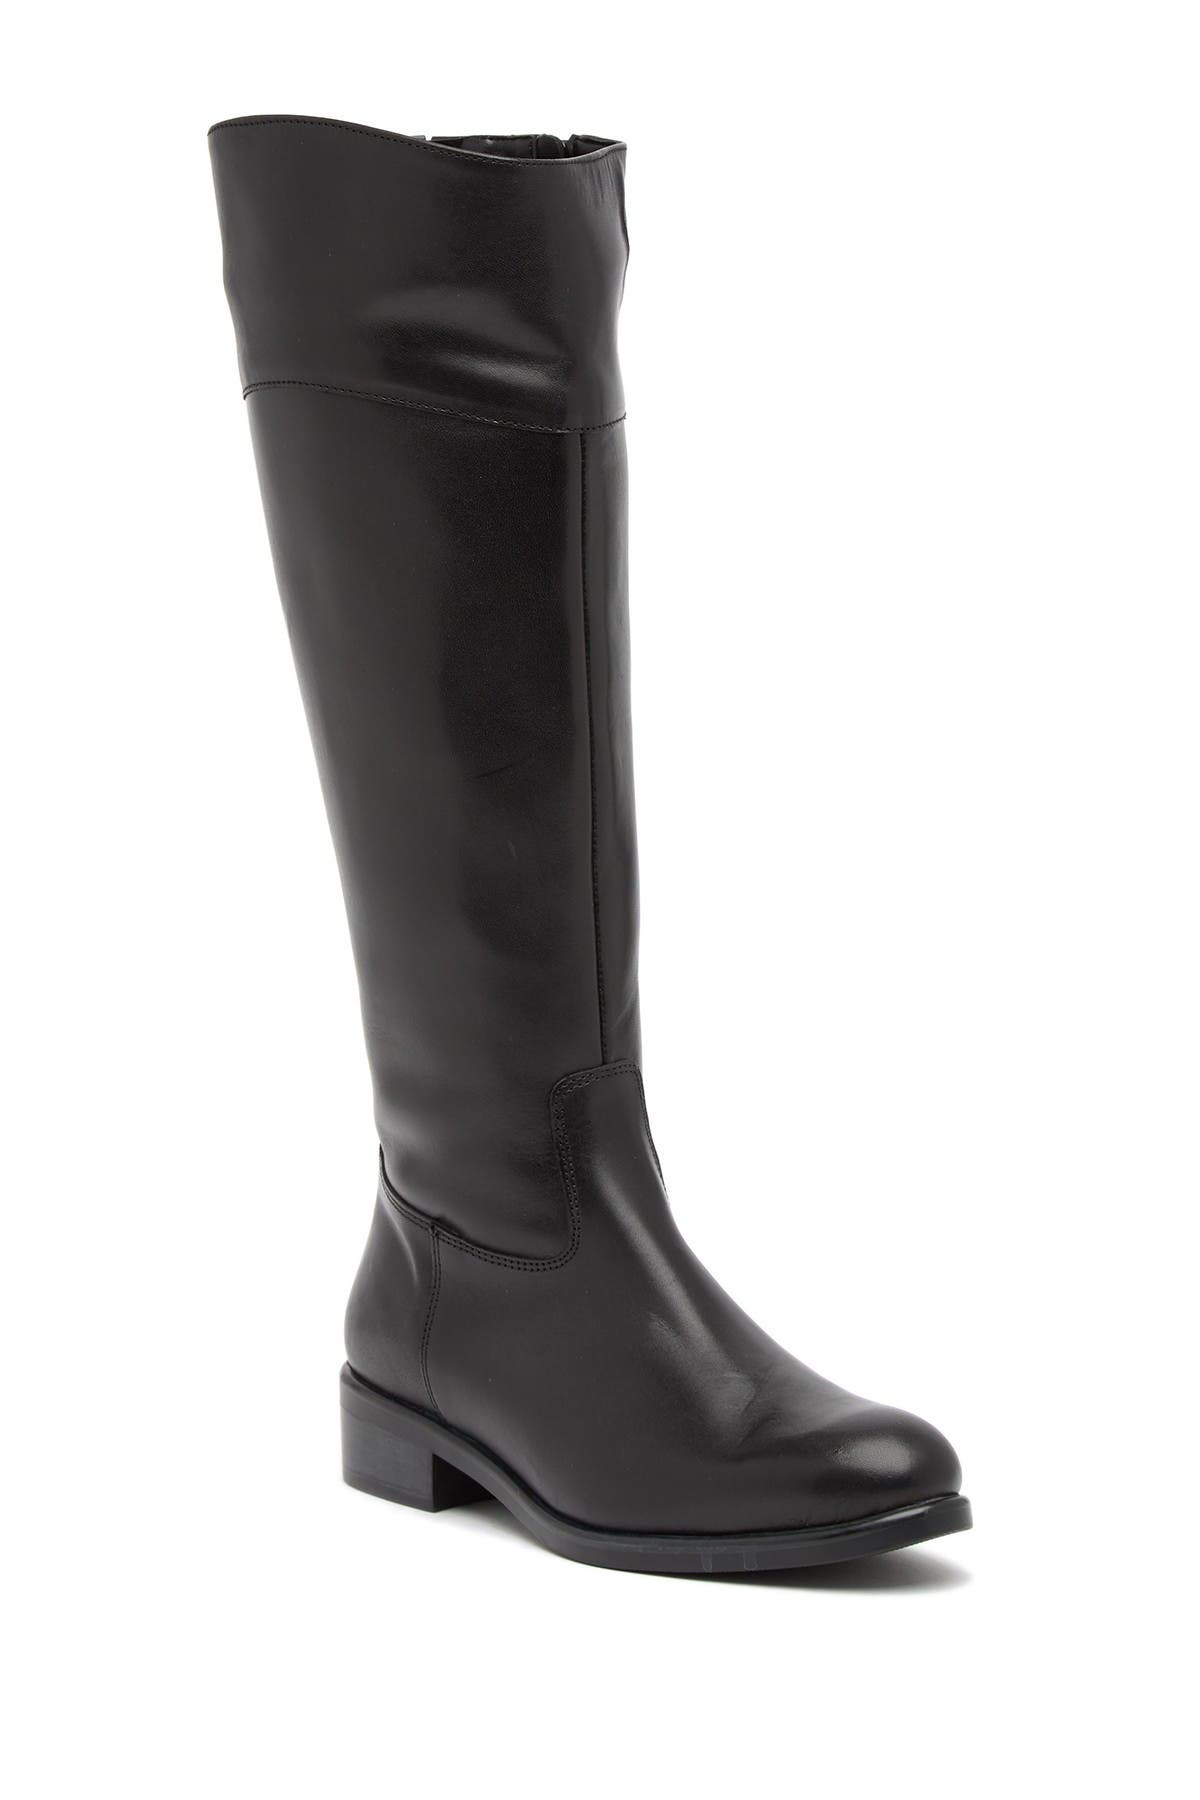 Image of Italian Shoemakers Angelica Leather Knee-High Boot